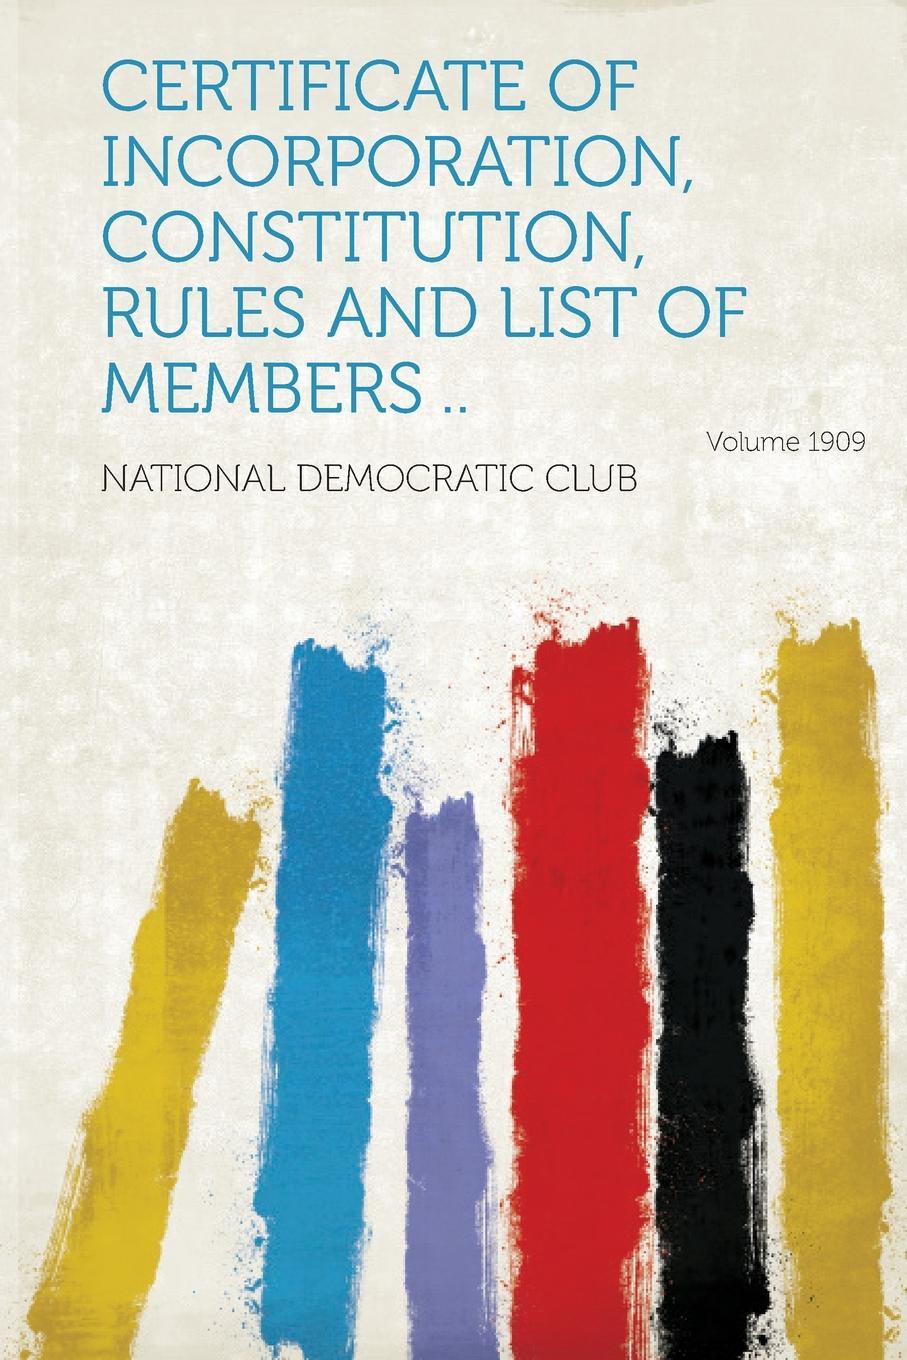 National Democratic Club Certificate of Incorporation, Constitution, Rules and List Members .. Year 1909